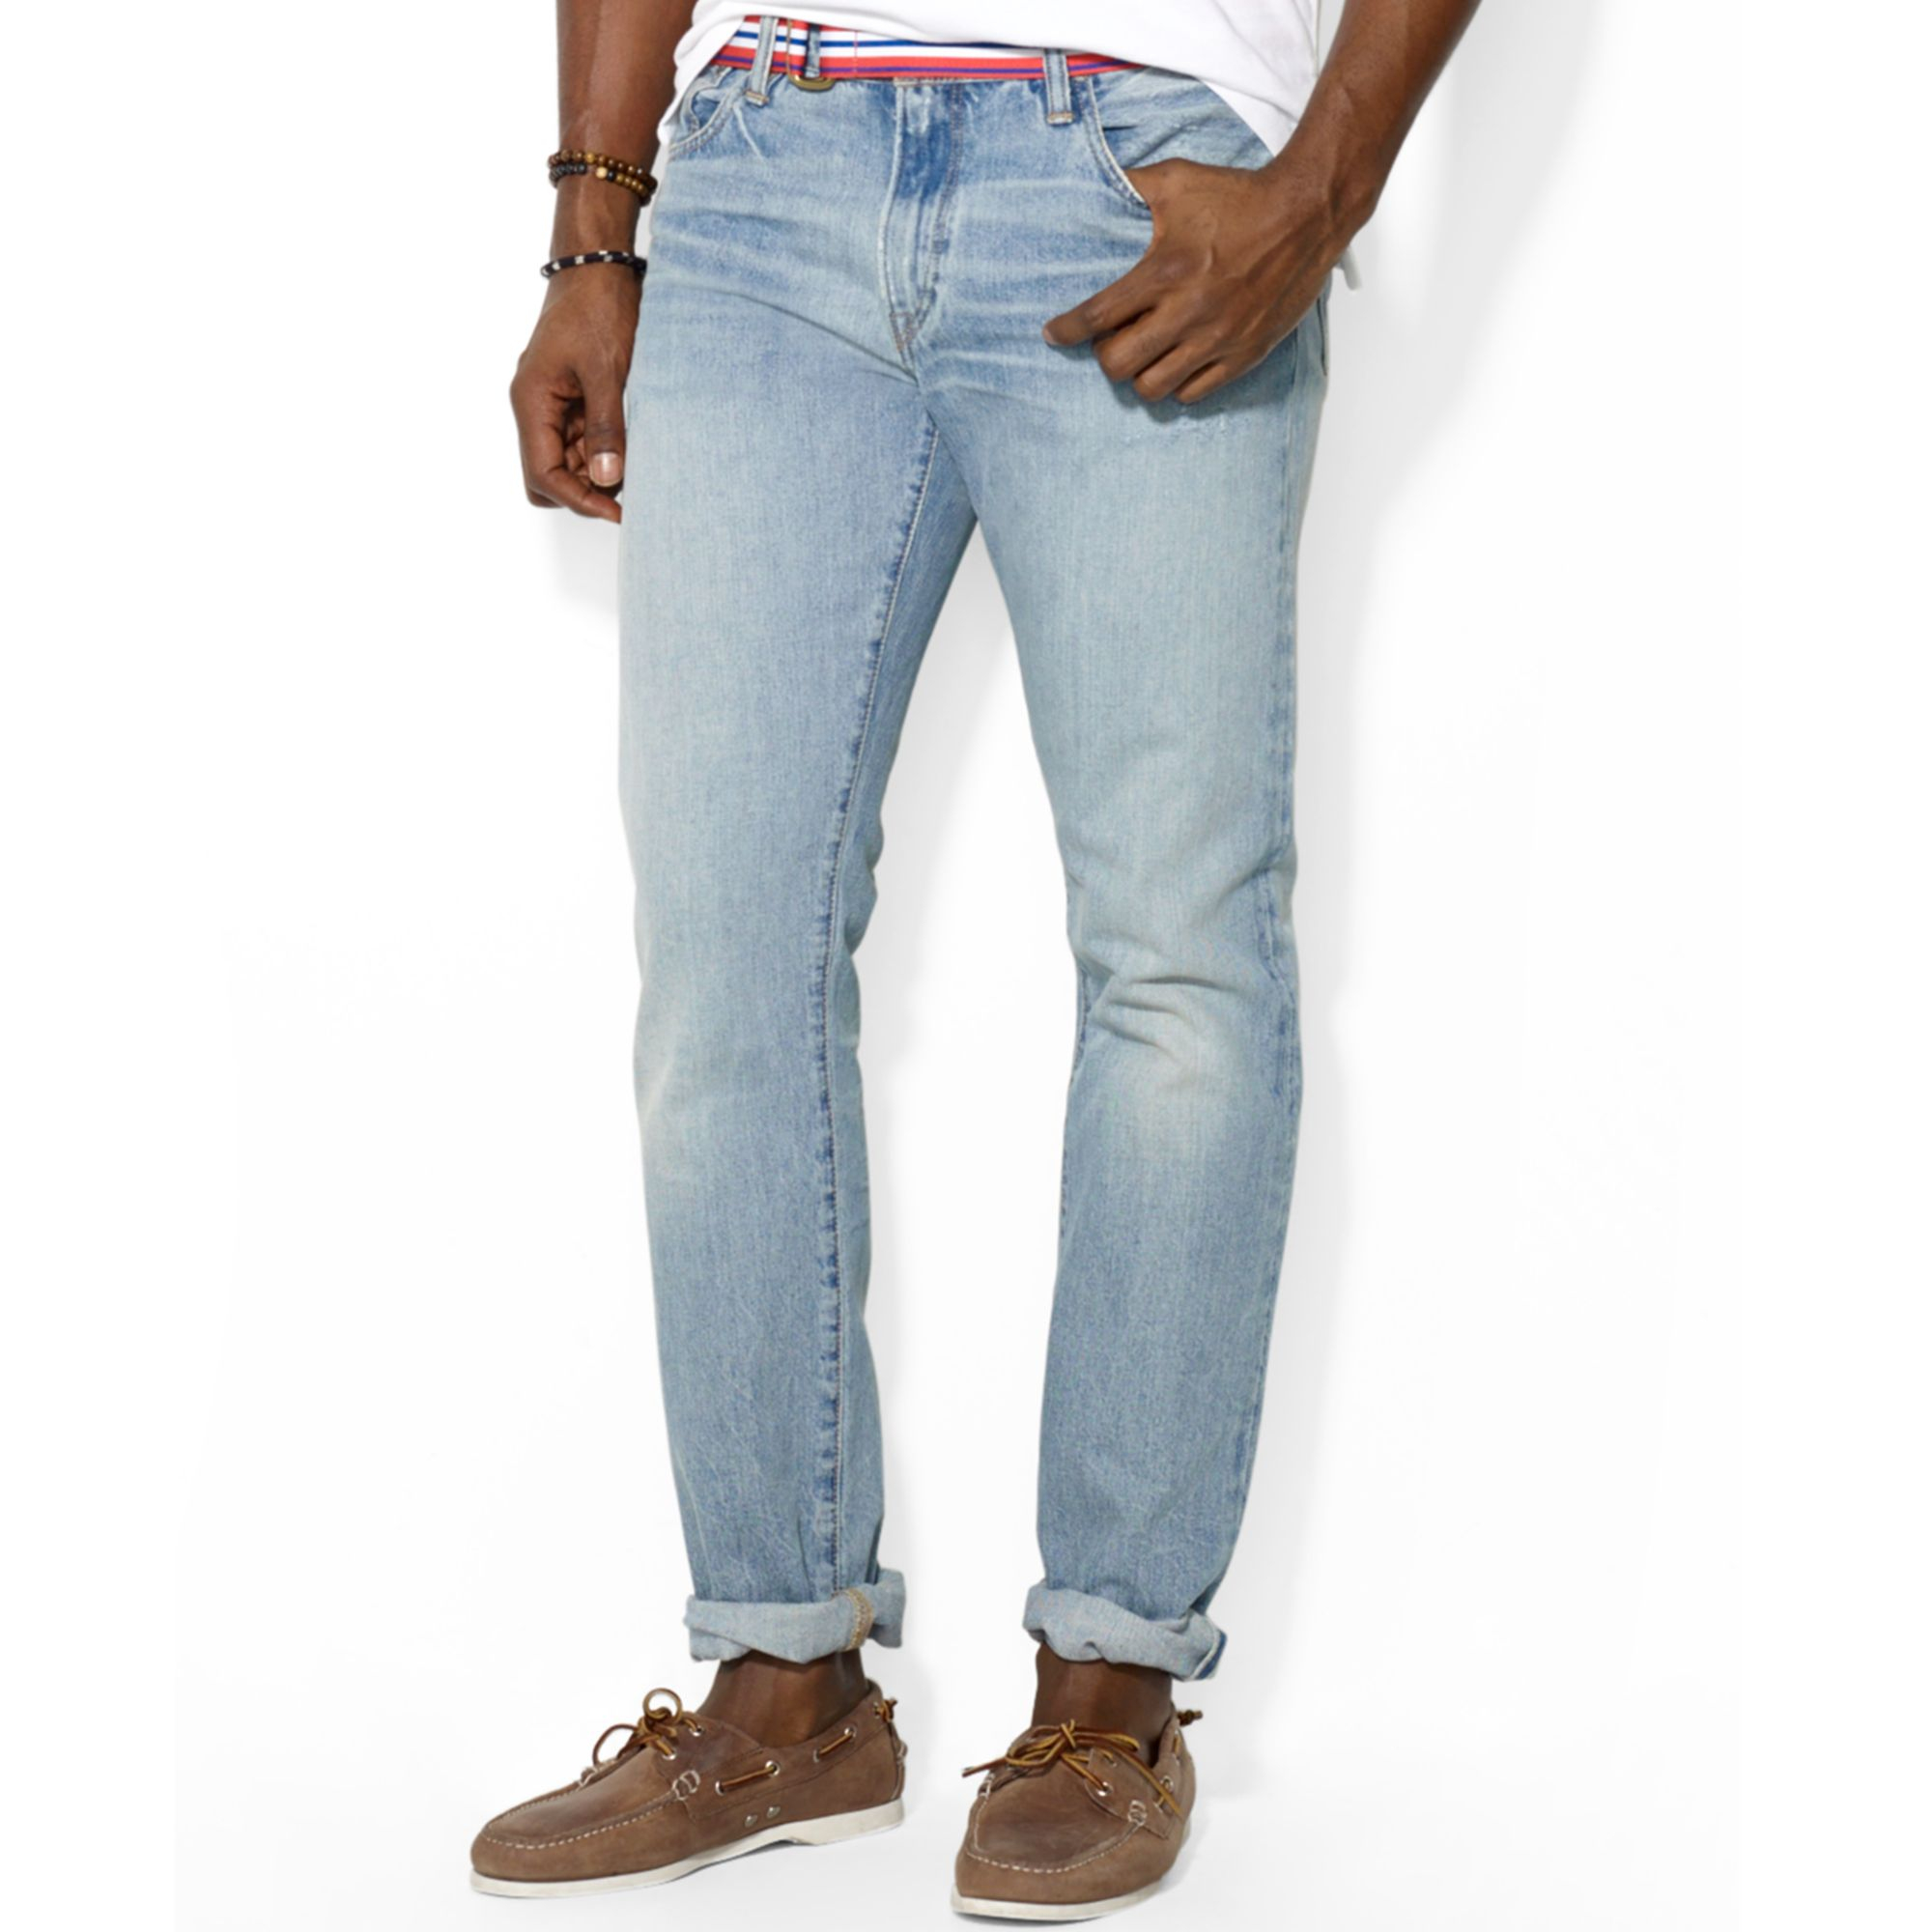 Buy Polo Ralph Lauren Men's Straight Fit Jean Style Cotton Pants-WhiteW X 32L and other Jeans at weziqaze.ga Our wide selection is elegible for free shipping and free returns.